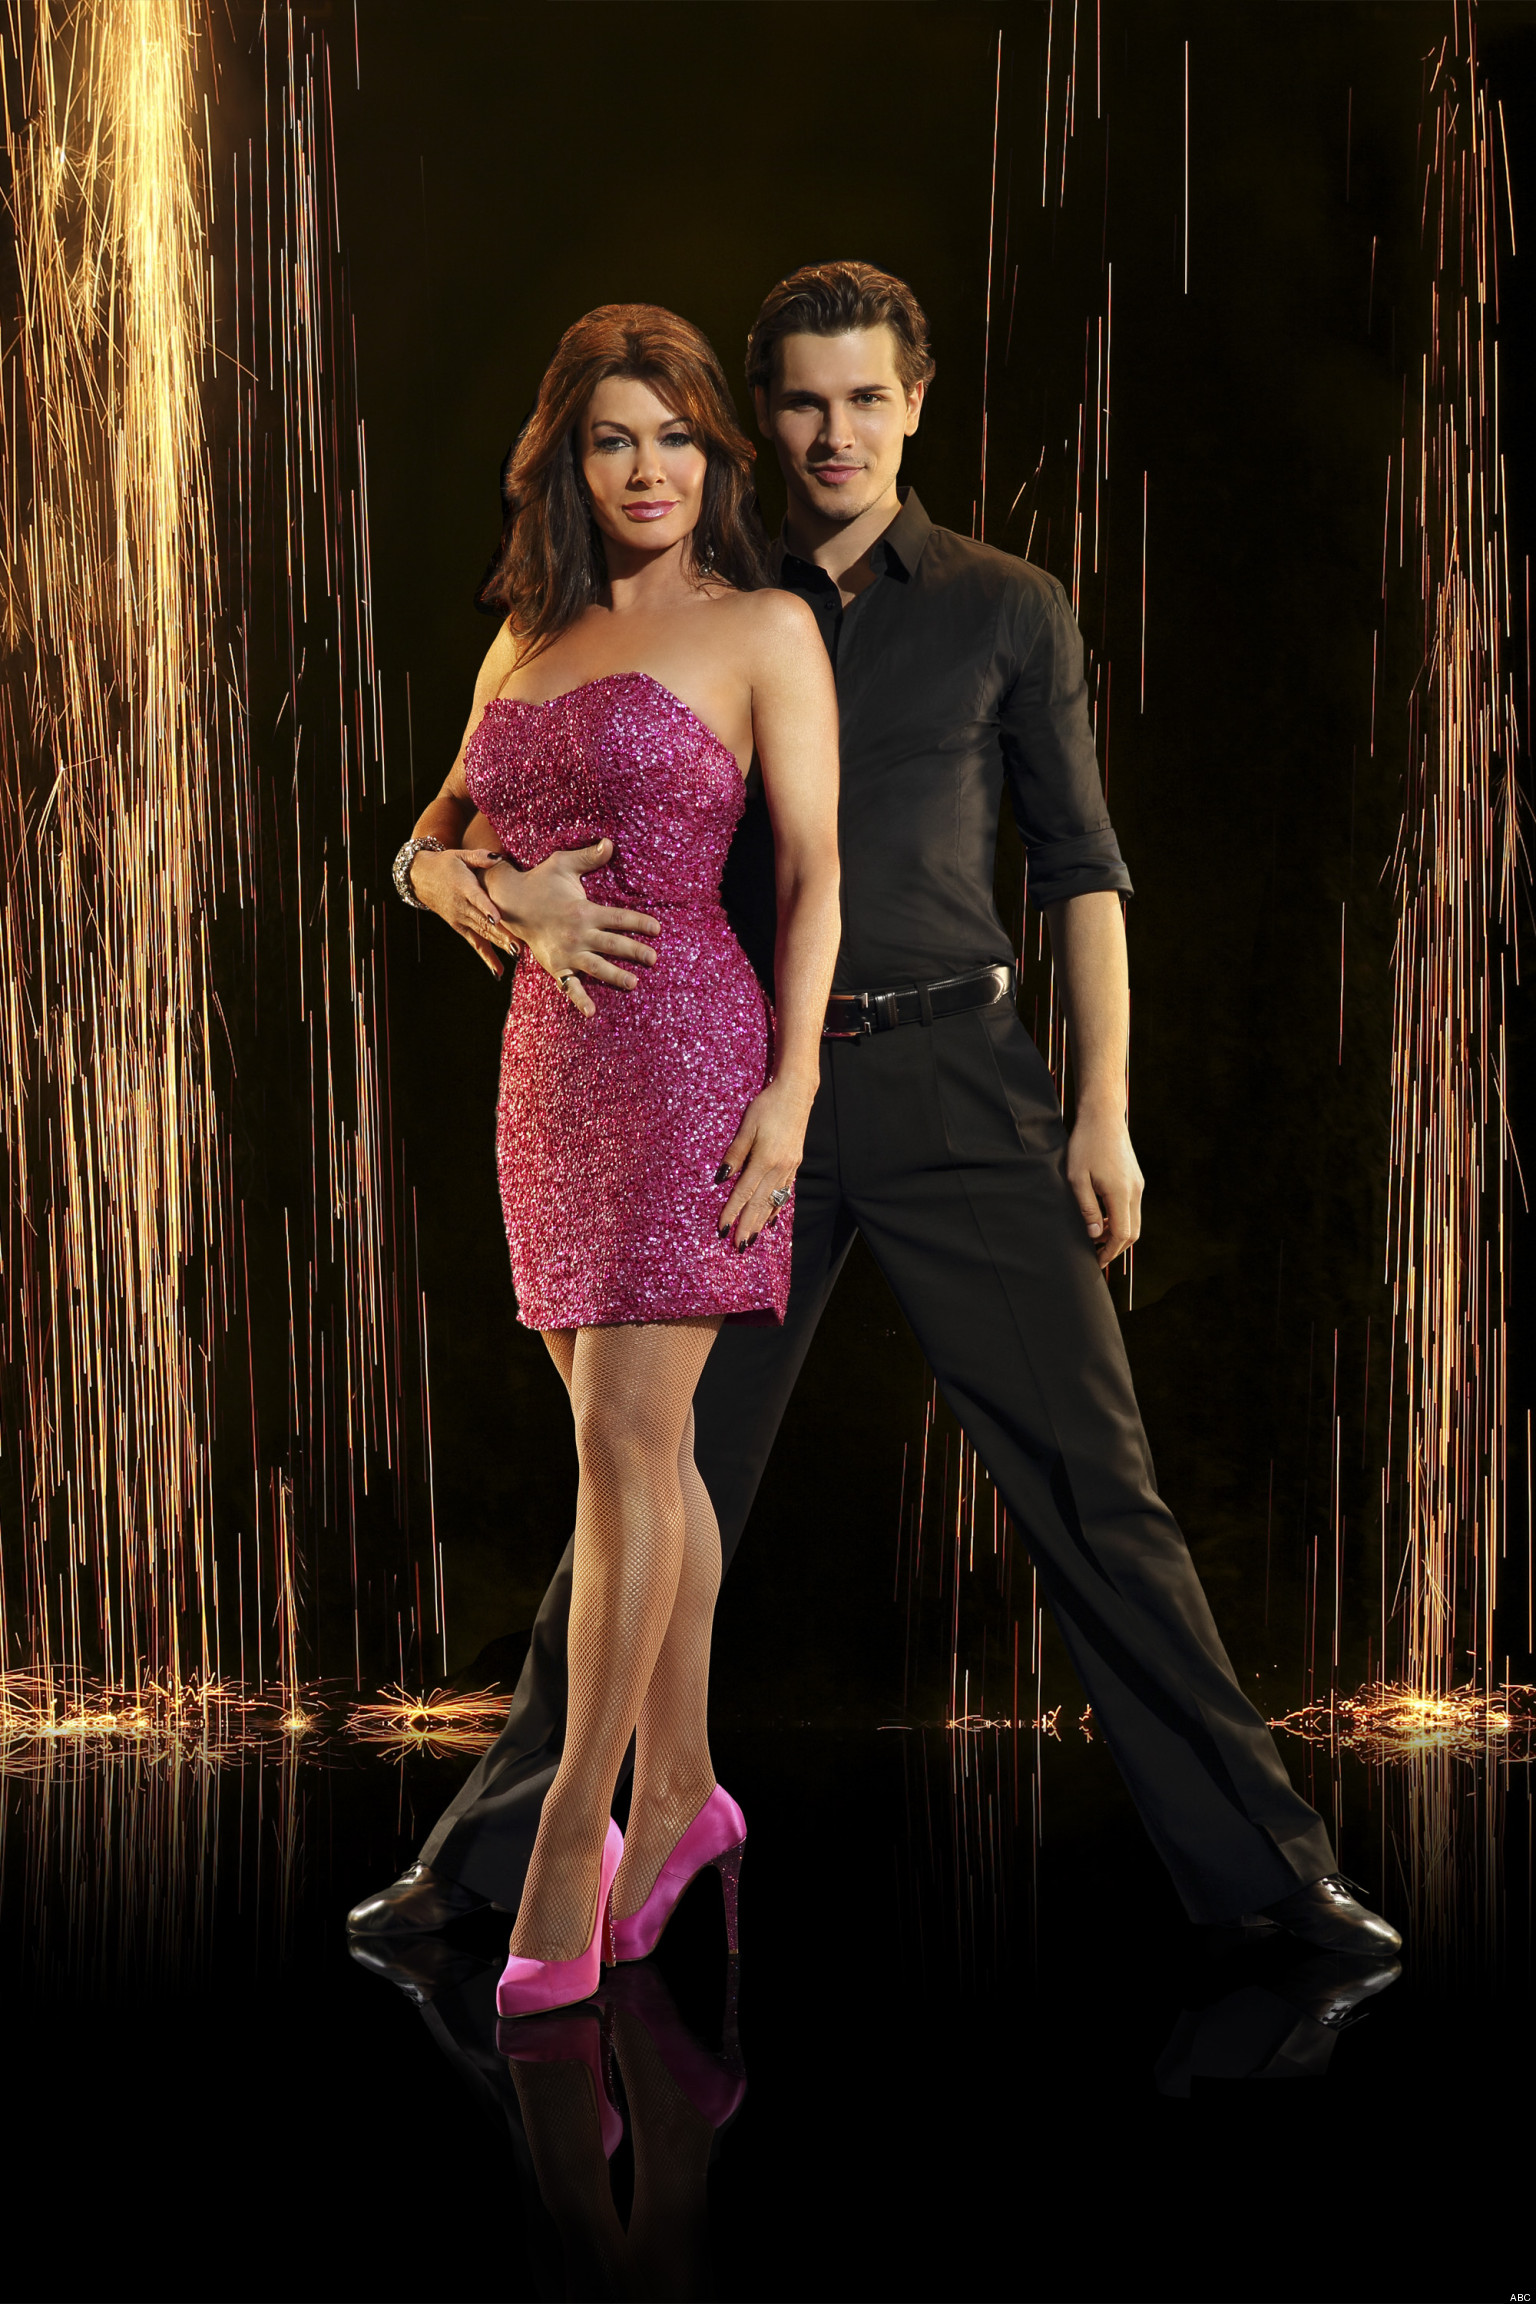 'Dancing With The Stars' Cast Photos: Season 16 Partners